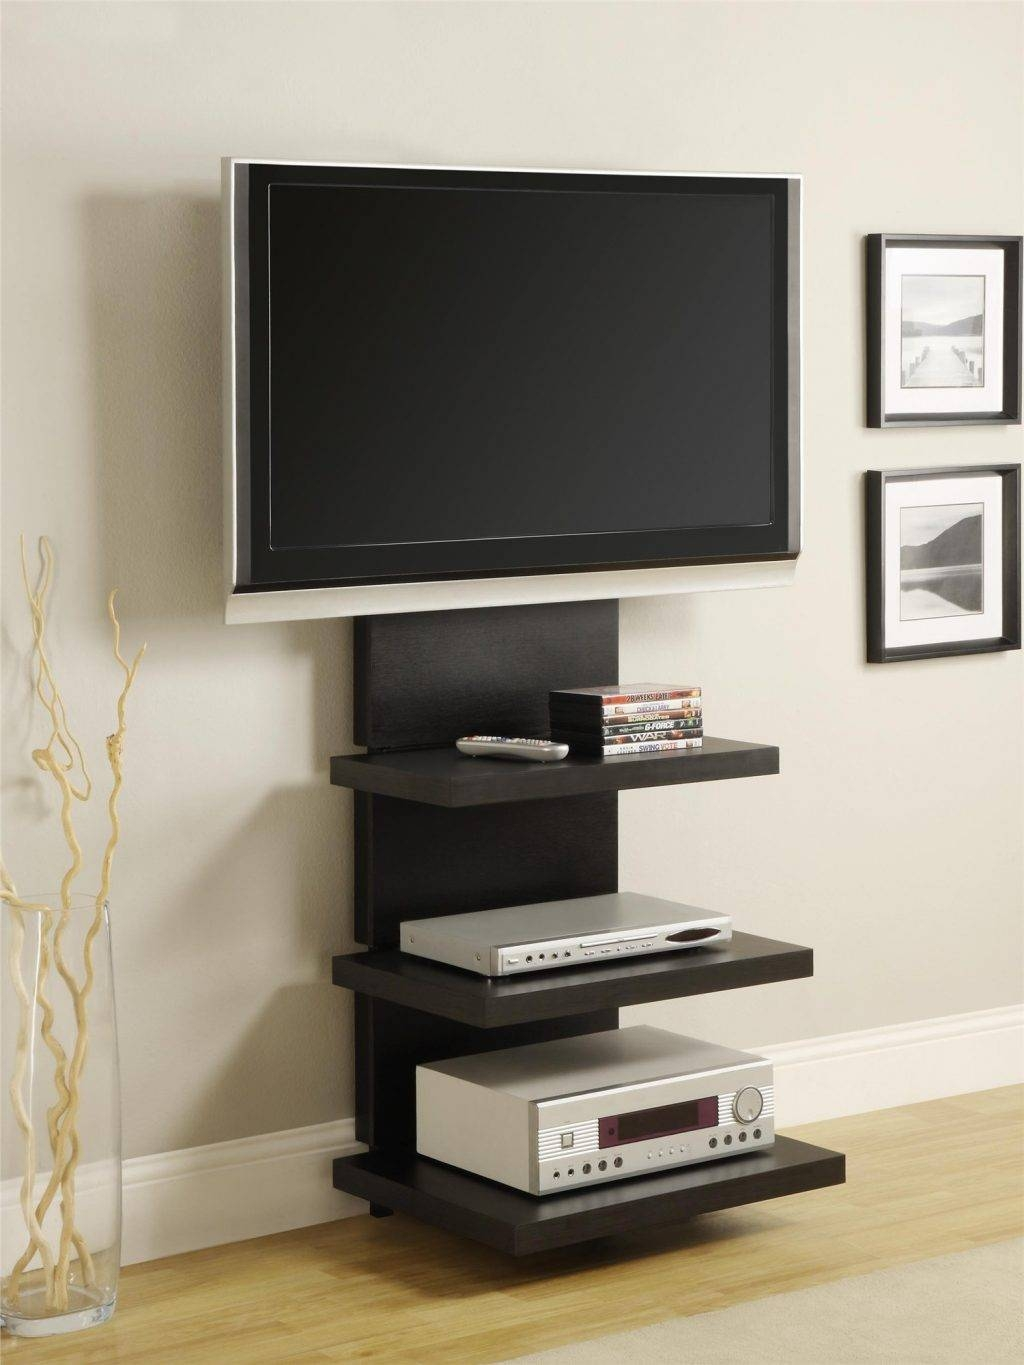 Bon Displaying Gallery Of Tv Stands For Small Rooms View 14 15 Photos